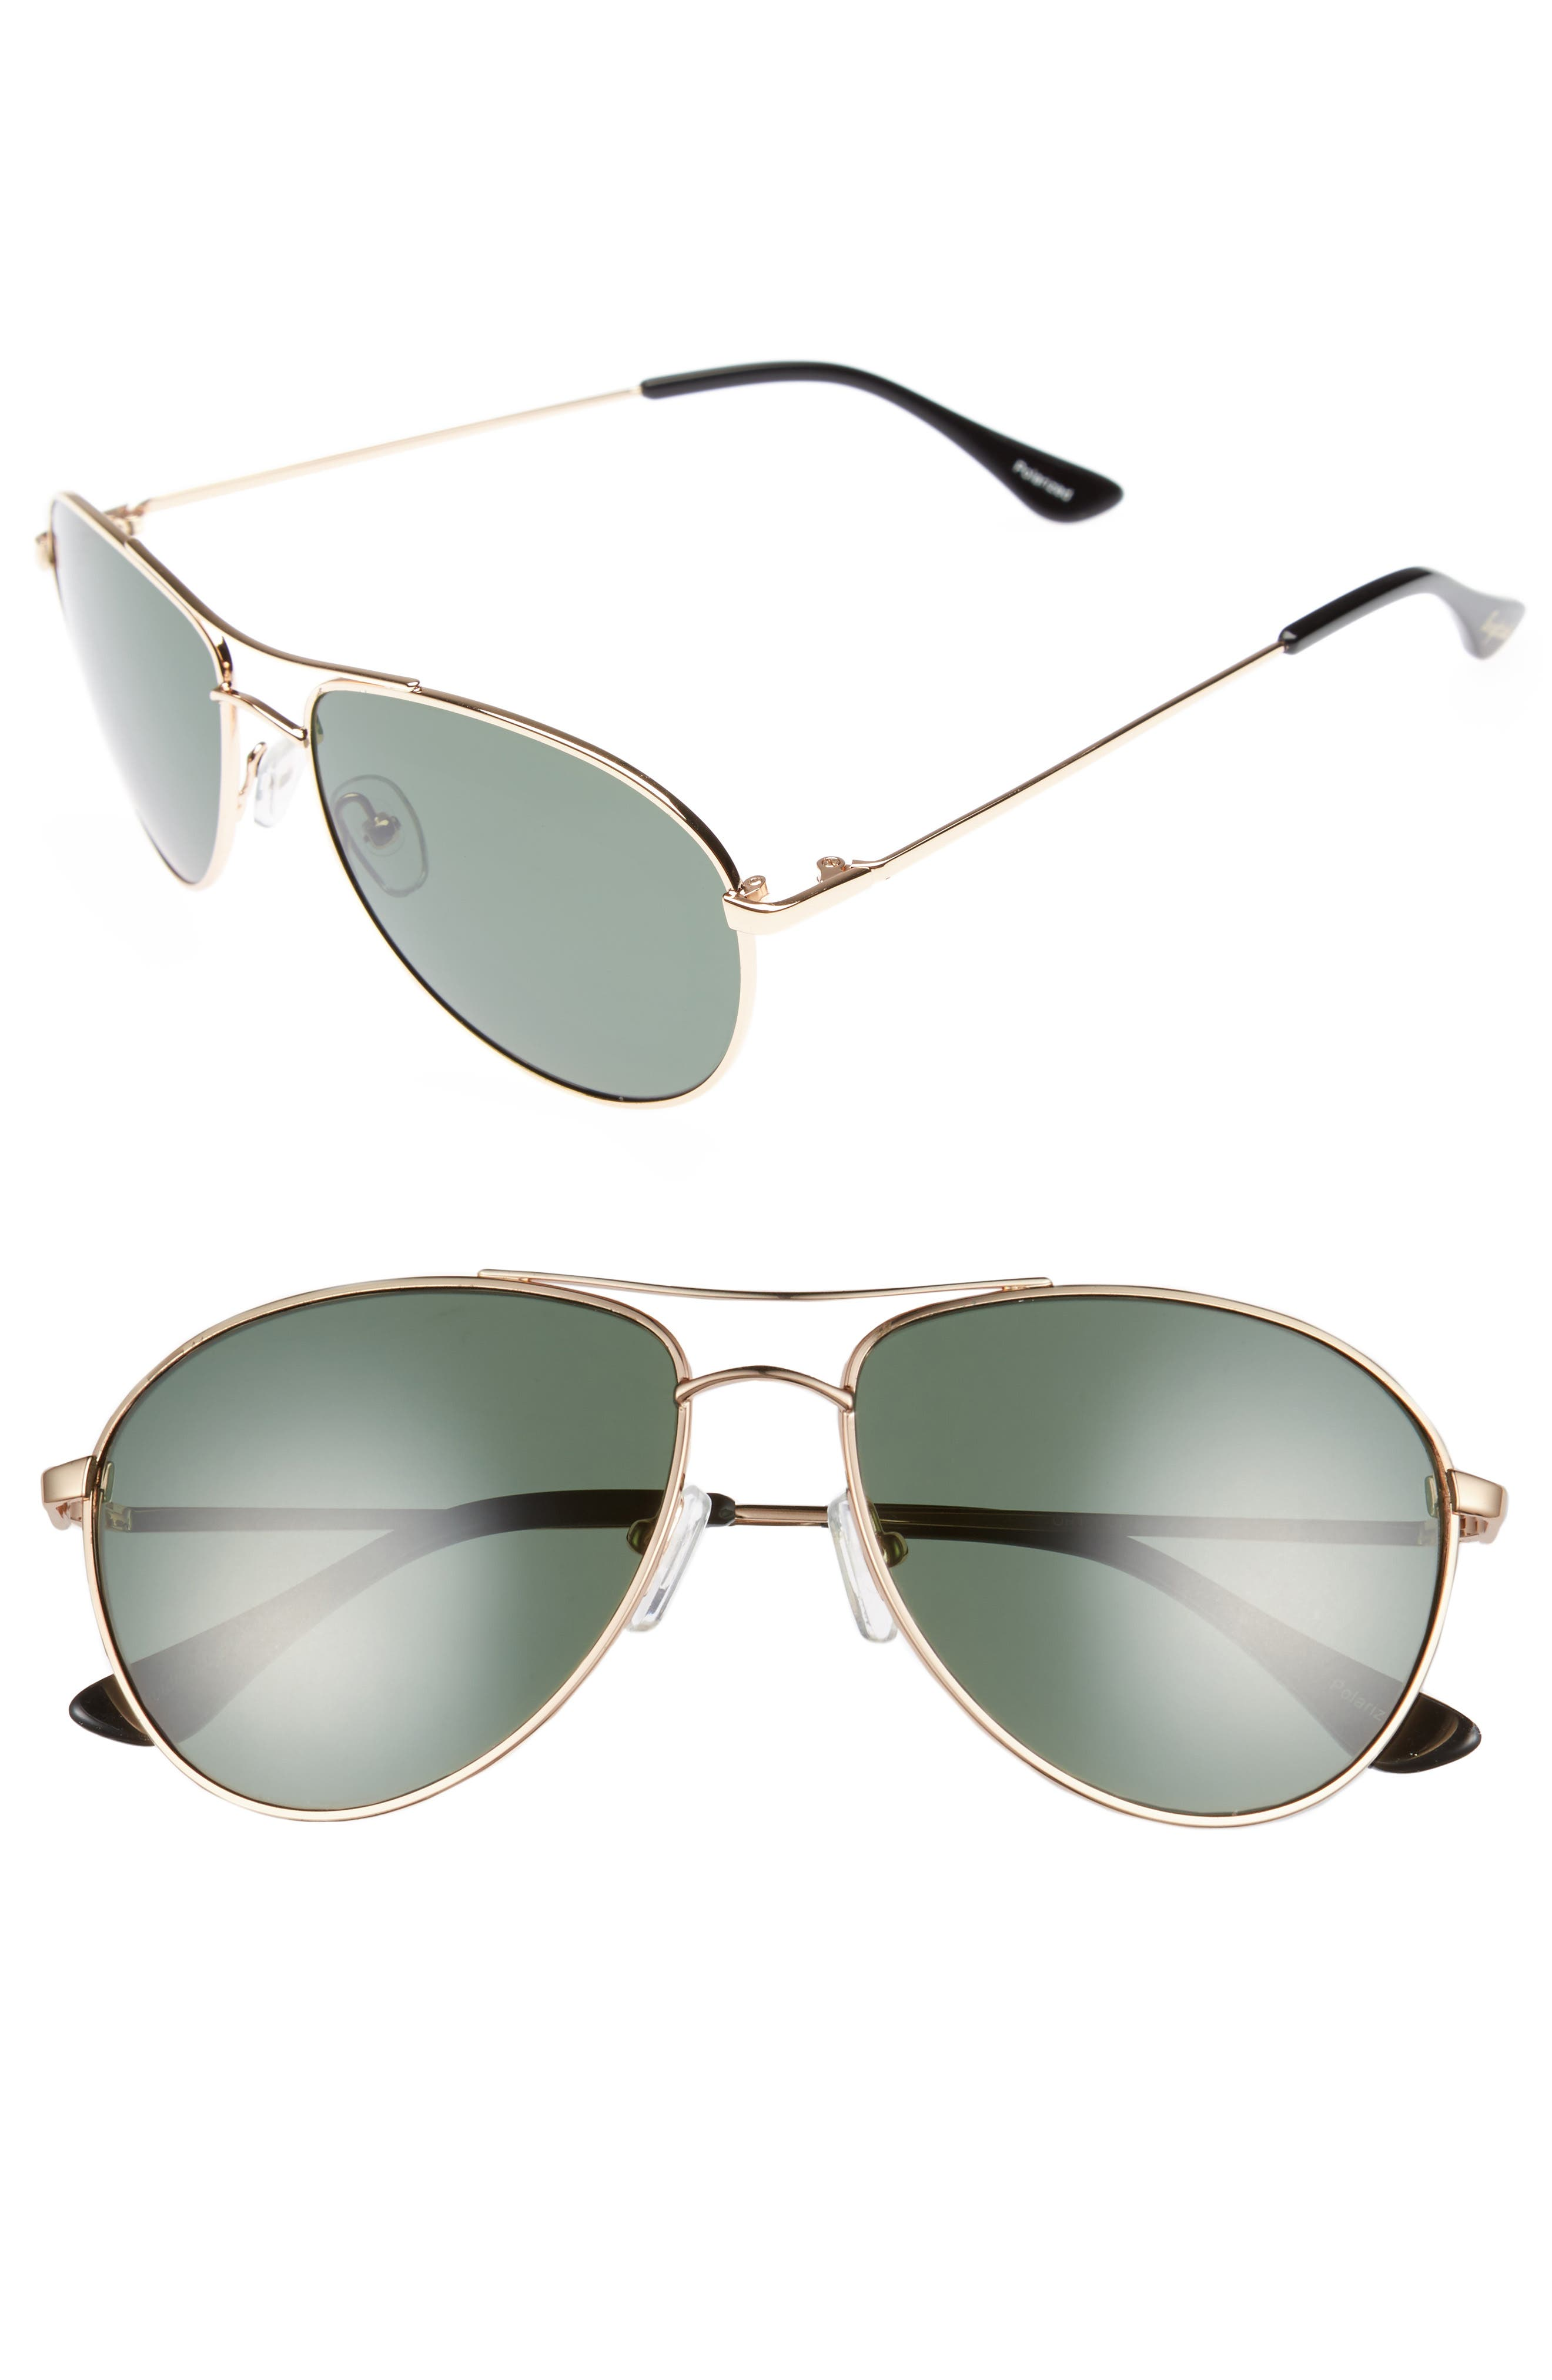 Brightside Orville 58mm Polarized Aviator Sunglasses